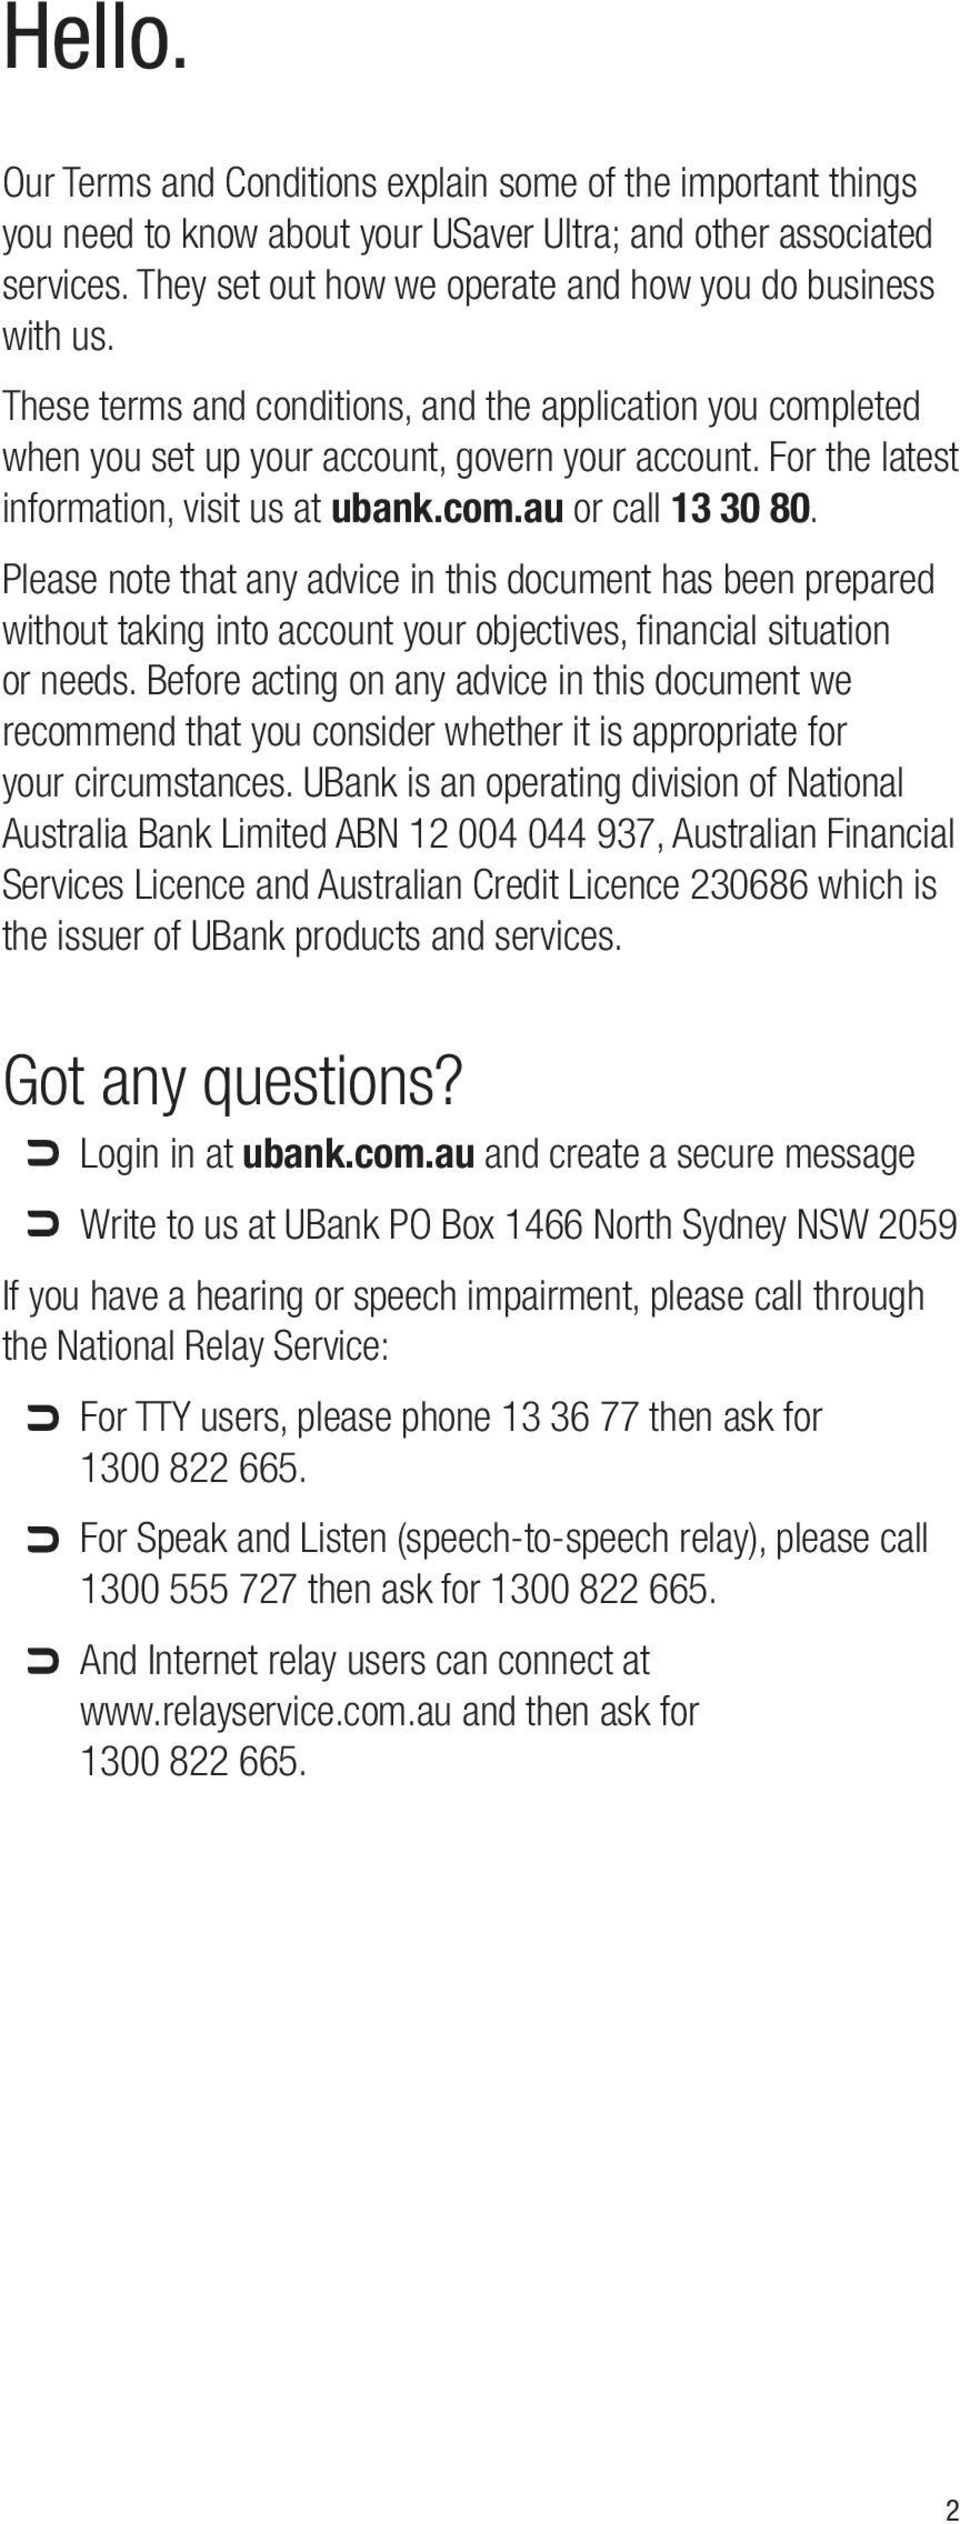 For the latest information, visit us at ubank.com.au or call 13 30 80.